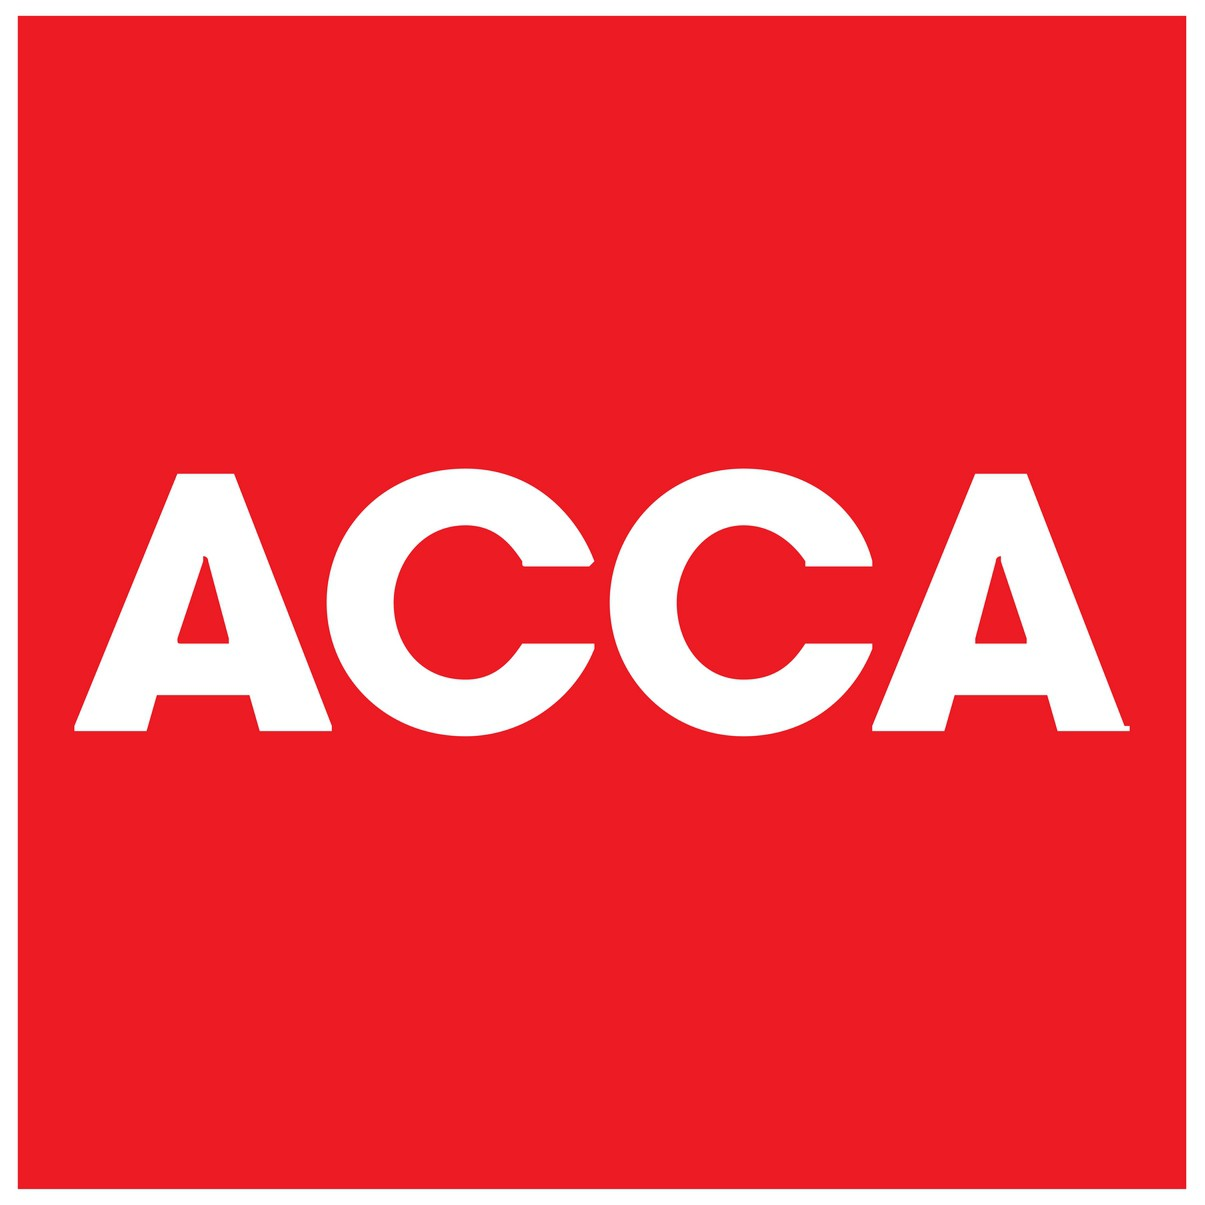 ACCA Logo png